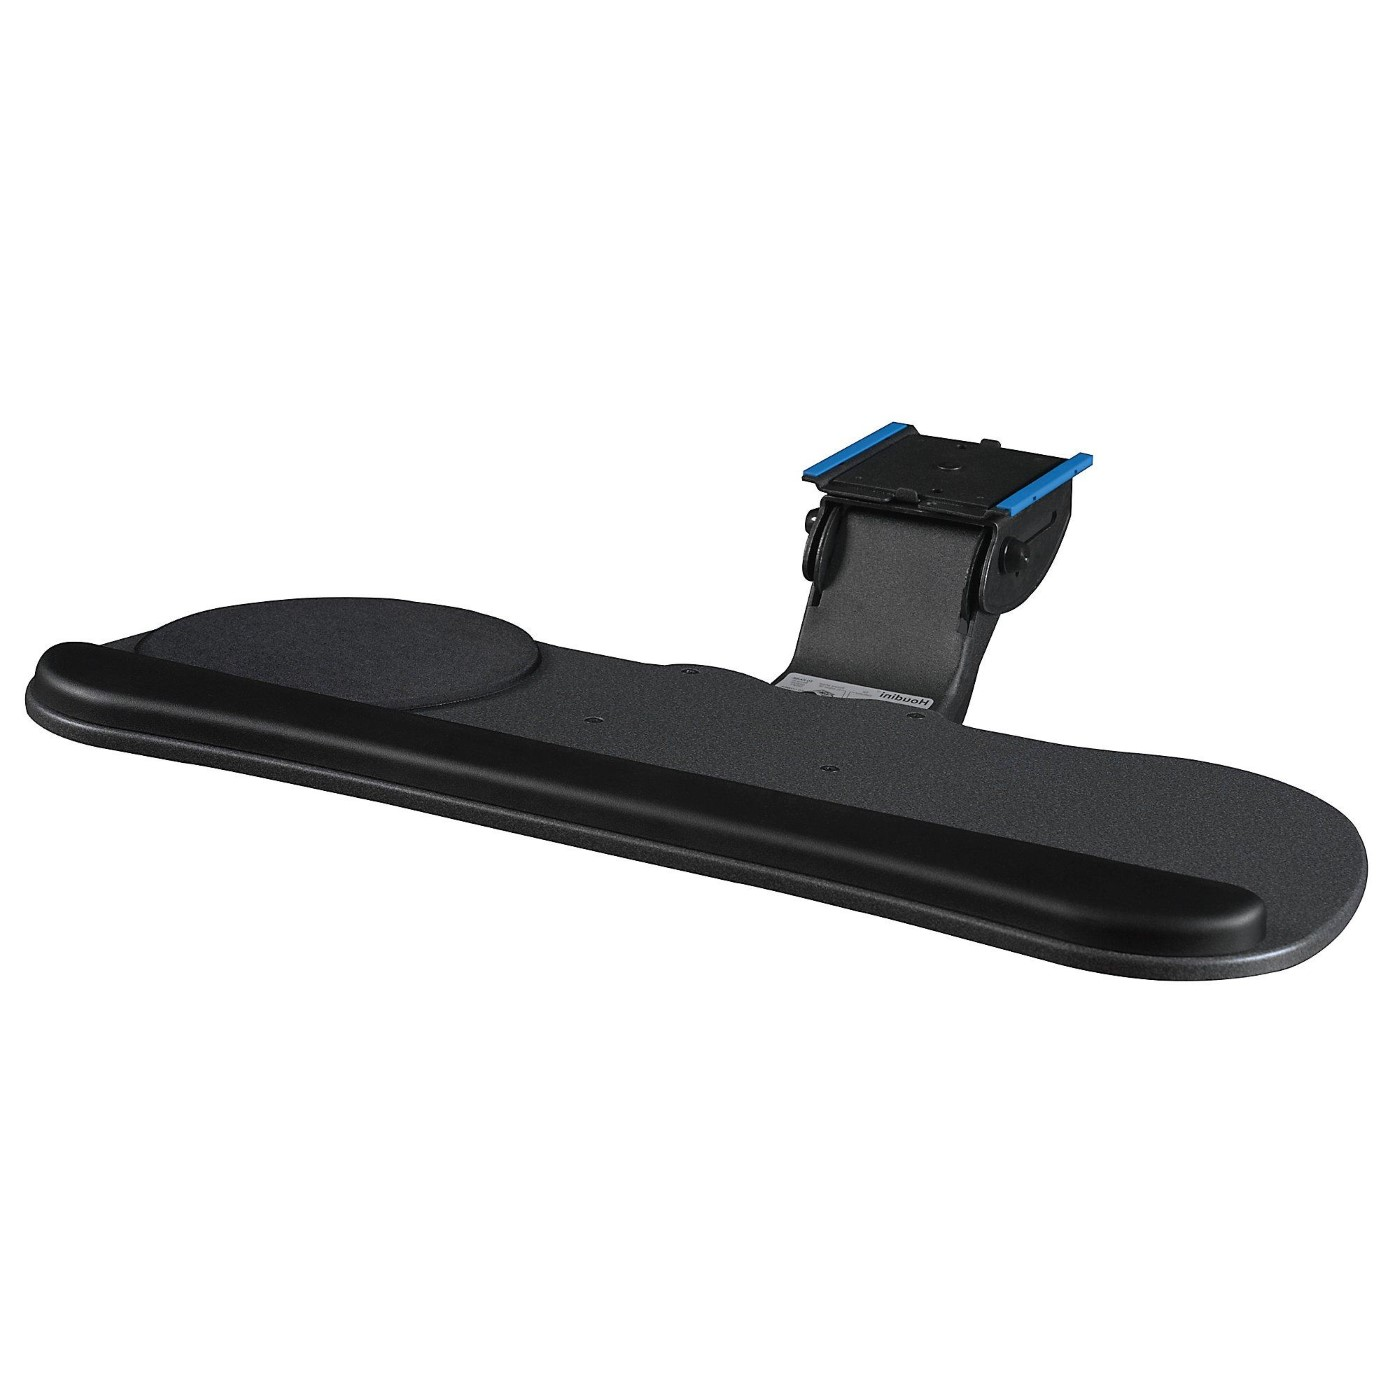 <font color=#c60><b>BUSH BUSINESS FURNITURE DELUXE ARTICULATING KEYBOARD TRAY (LONG TRACK). FREE SHIPPING</font></b>